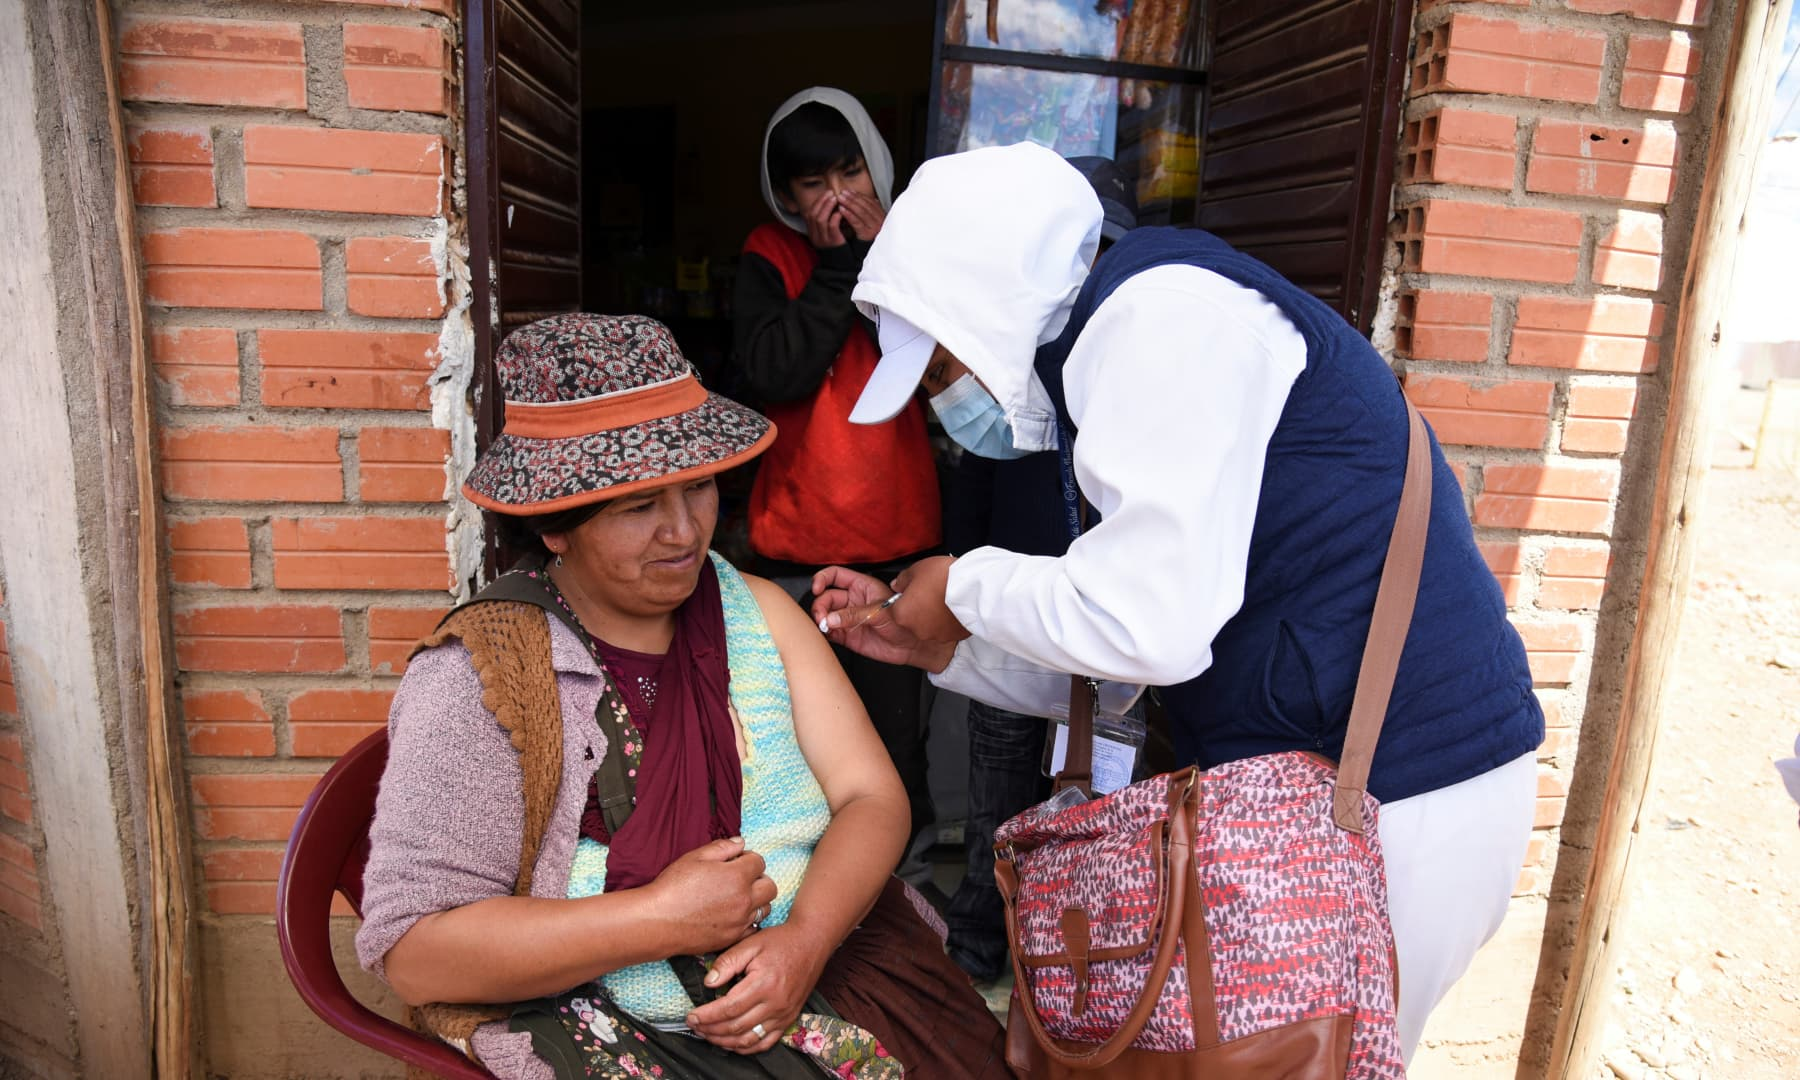 Shop owner Severina Cruz receives the AstraZeneca vaccine against the coronavirus as healthcare workers go from house to house to inoculate residents, in El Alto, Bolivia, on September 17, 2021. — Reuters